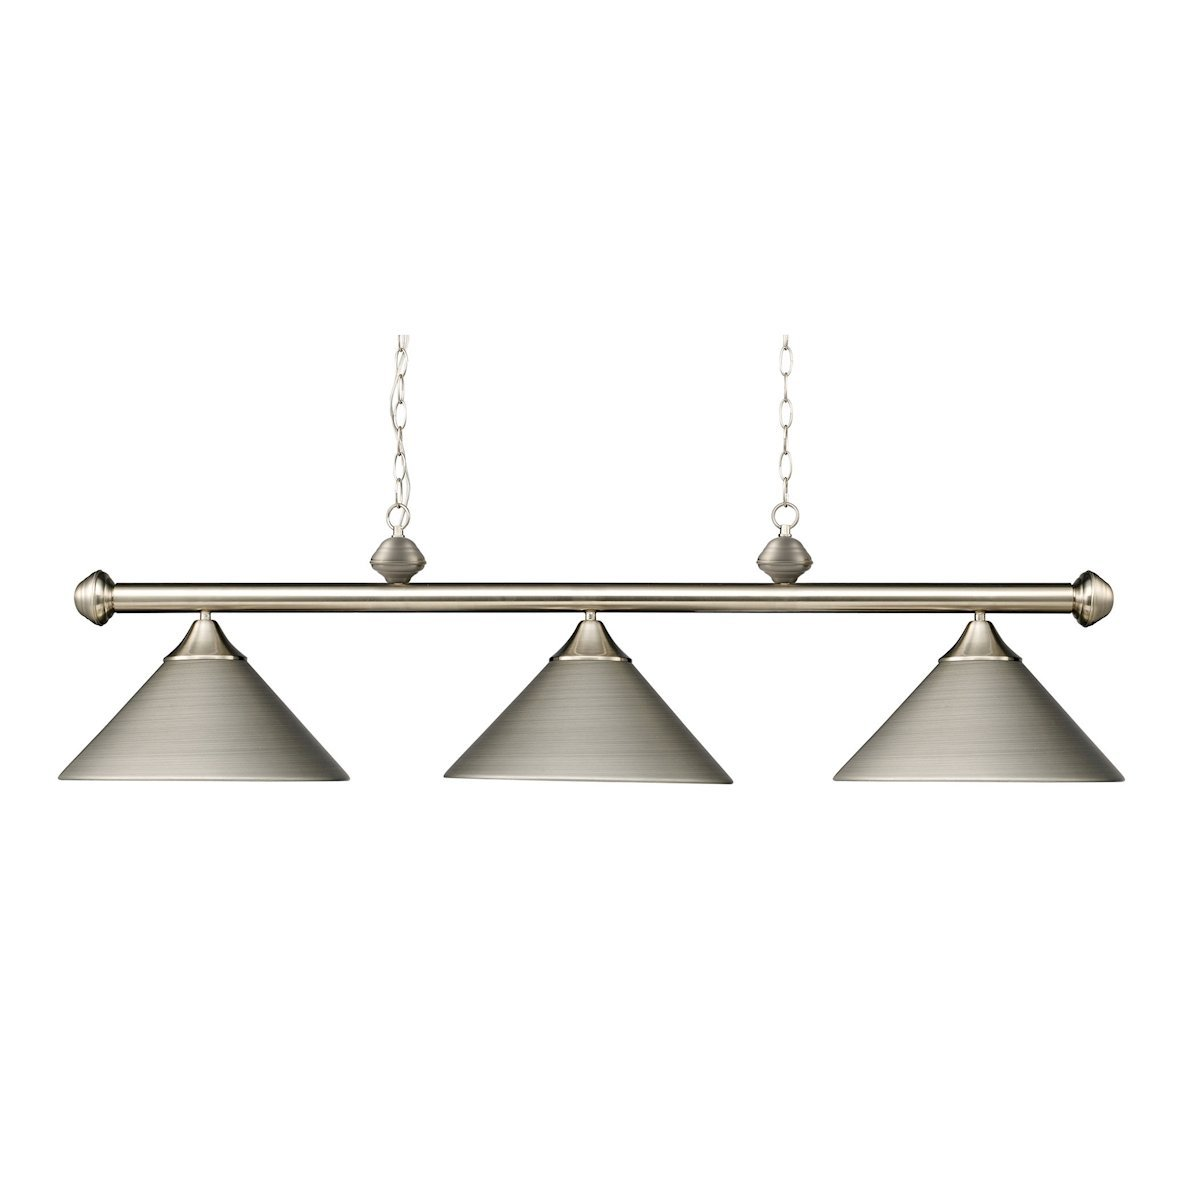 Casual Traditions 3 Light Billiard In Satin Nickel With Matching Metal Shades Ceiling Elk Lighting